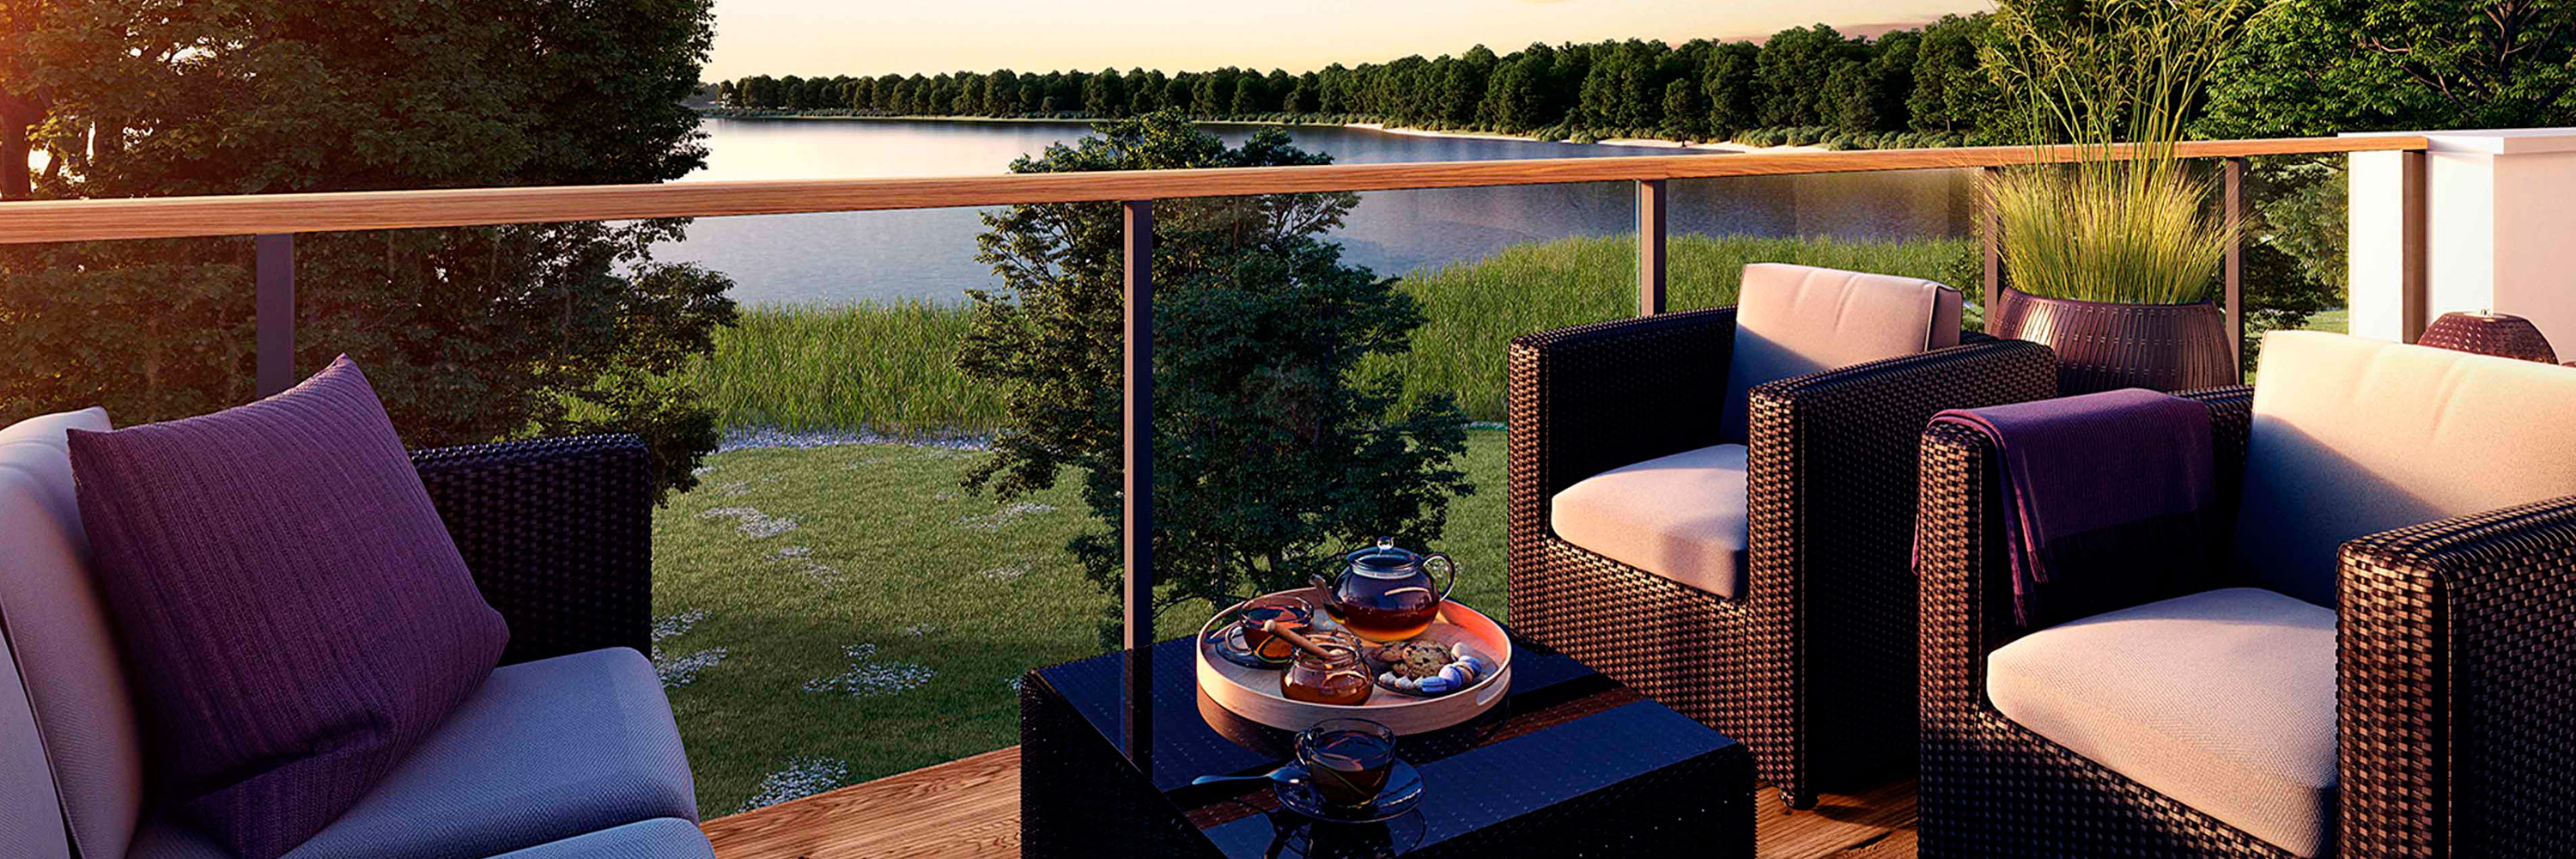 exklusive immobilie in bestensee am p tzer see hier. Black Bedroom Furniture Sets. Home Design Ideas